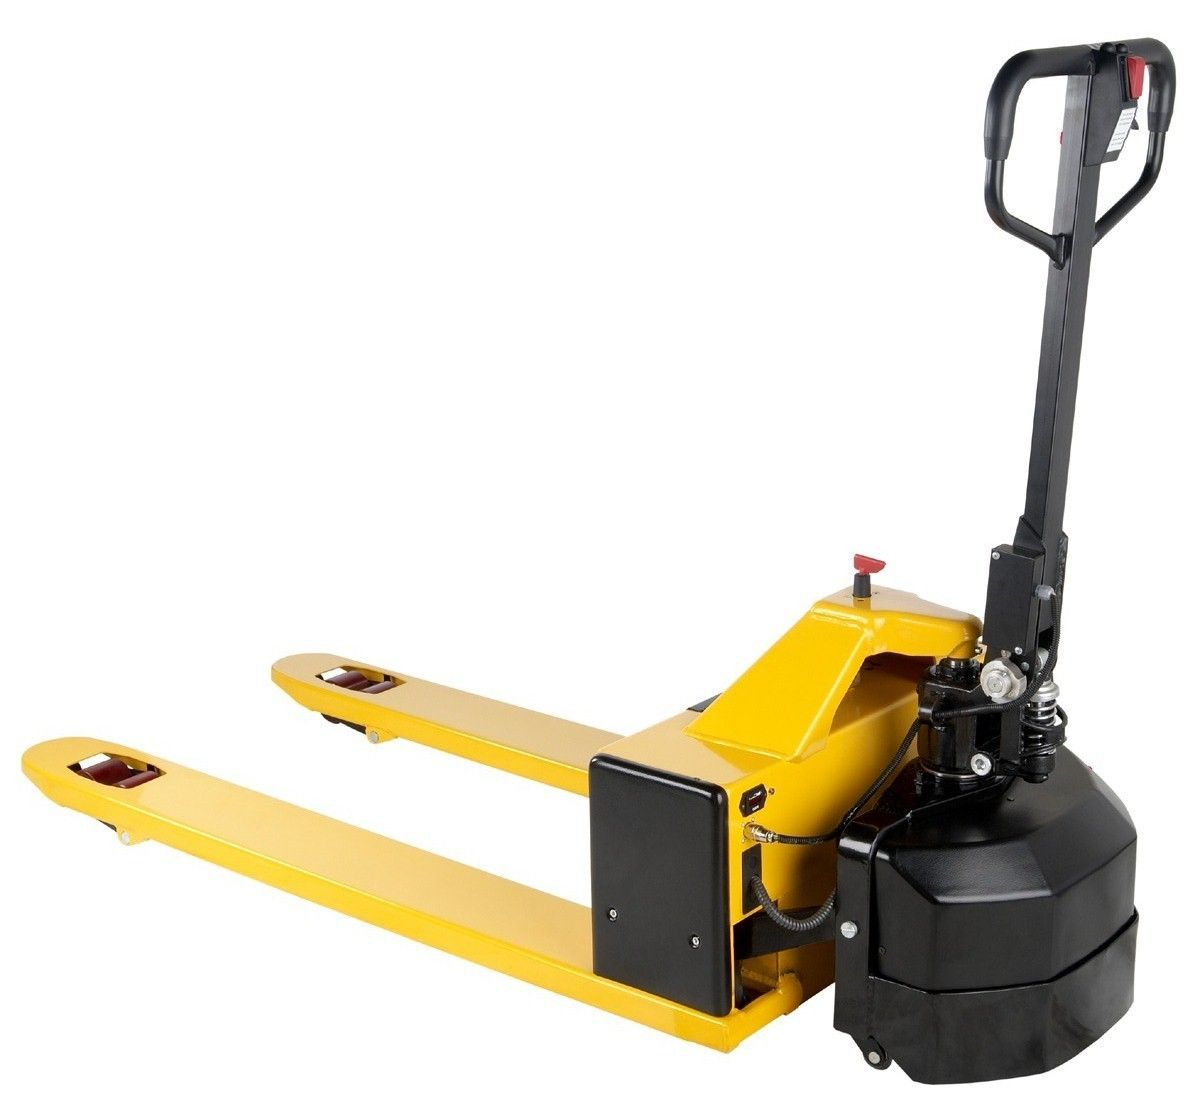 Forklift pallet jack heavy duty pallet jack lift for Motorized pallet jack rental